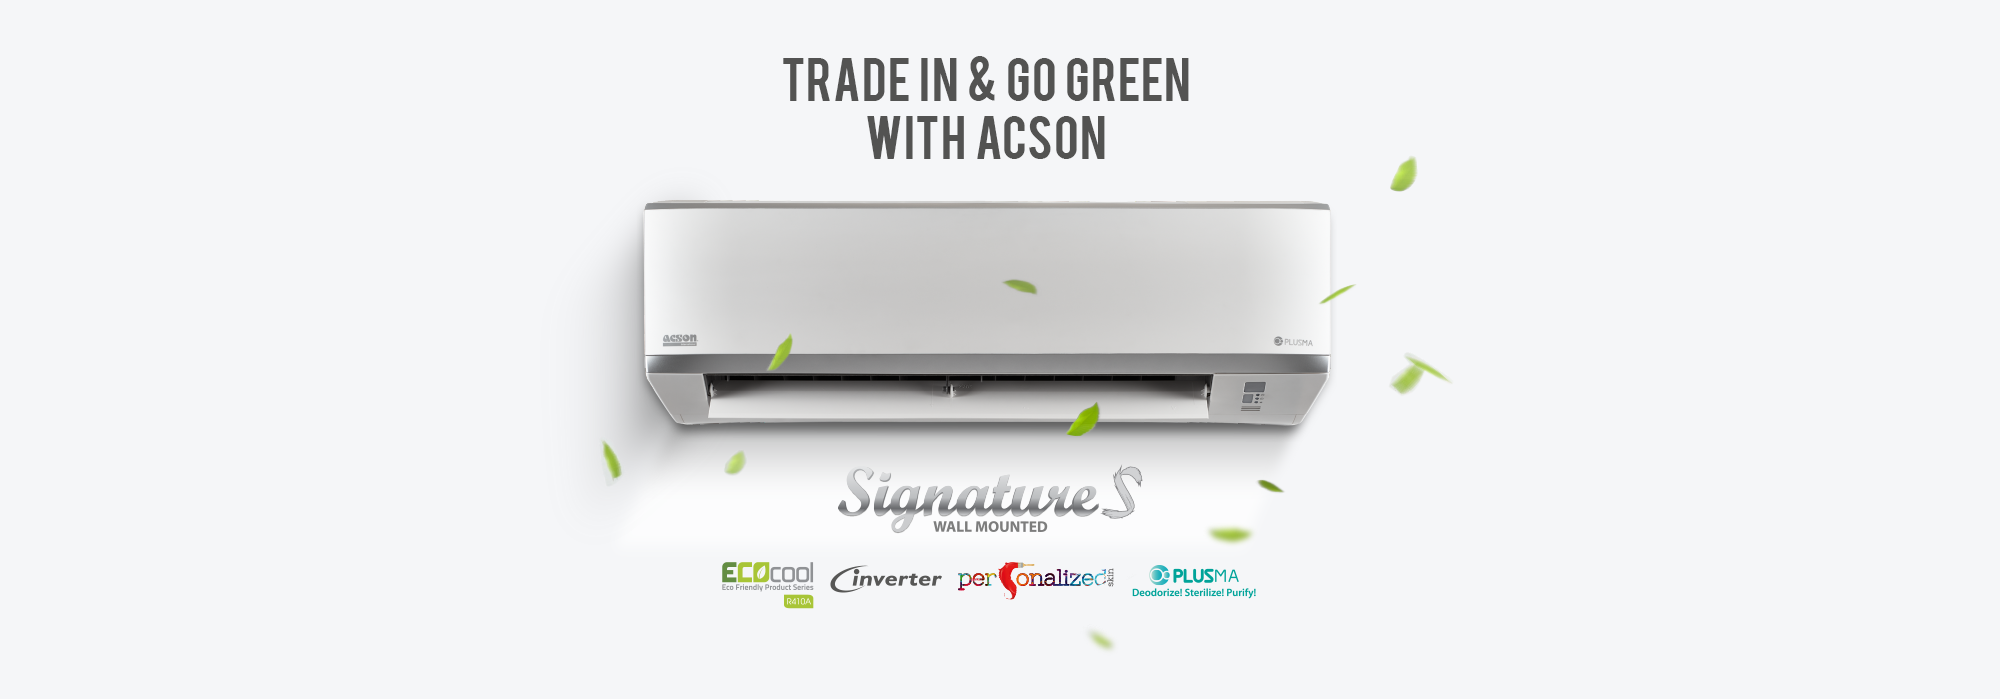 Trade In Amp Go Green Air Conditioner Acson Malaysia